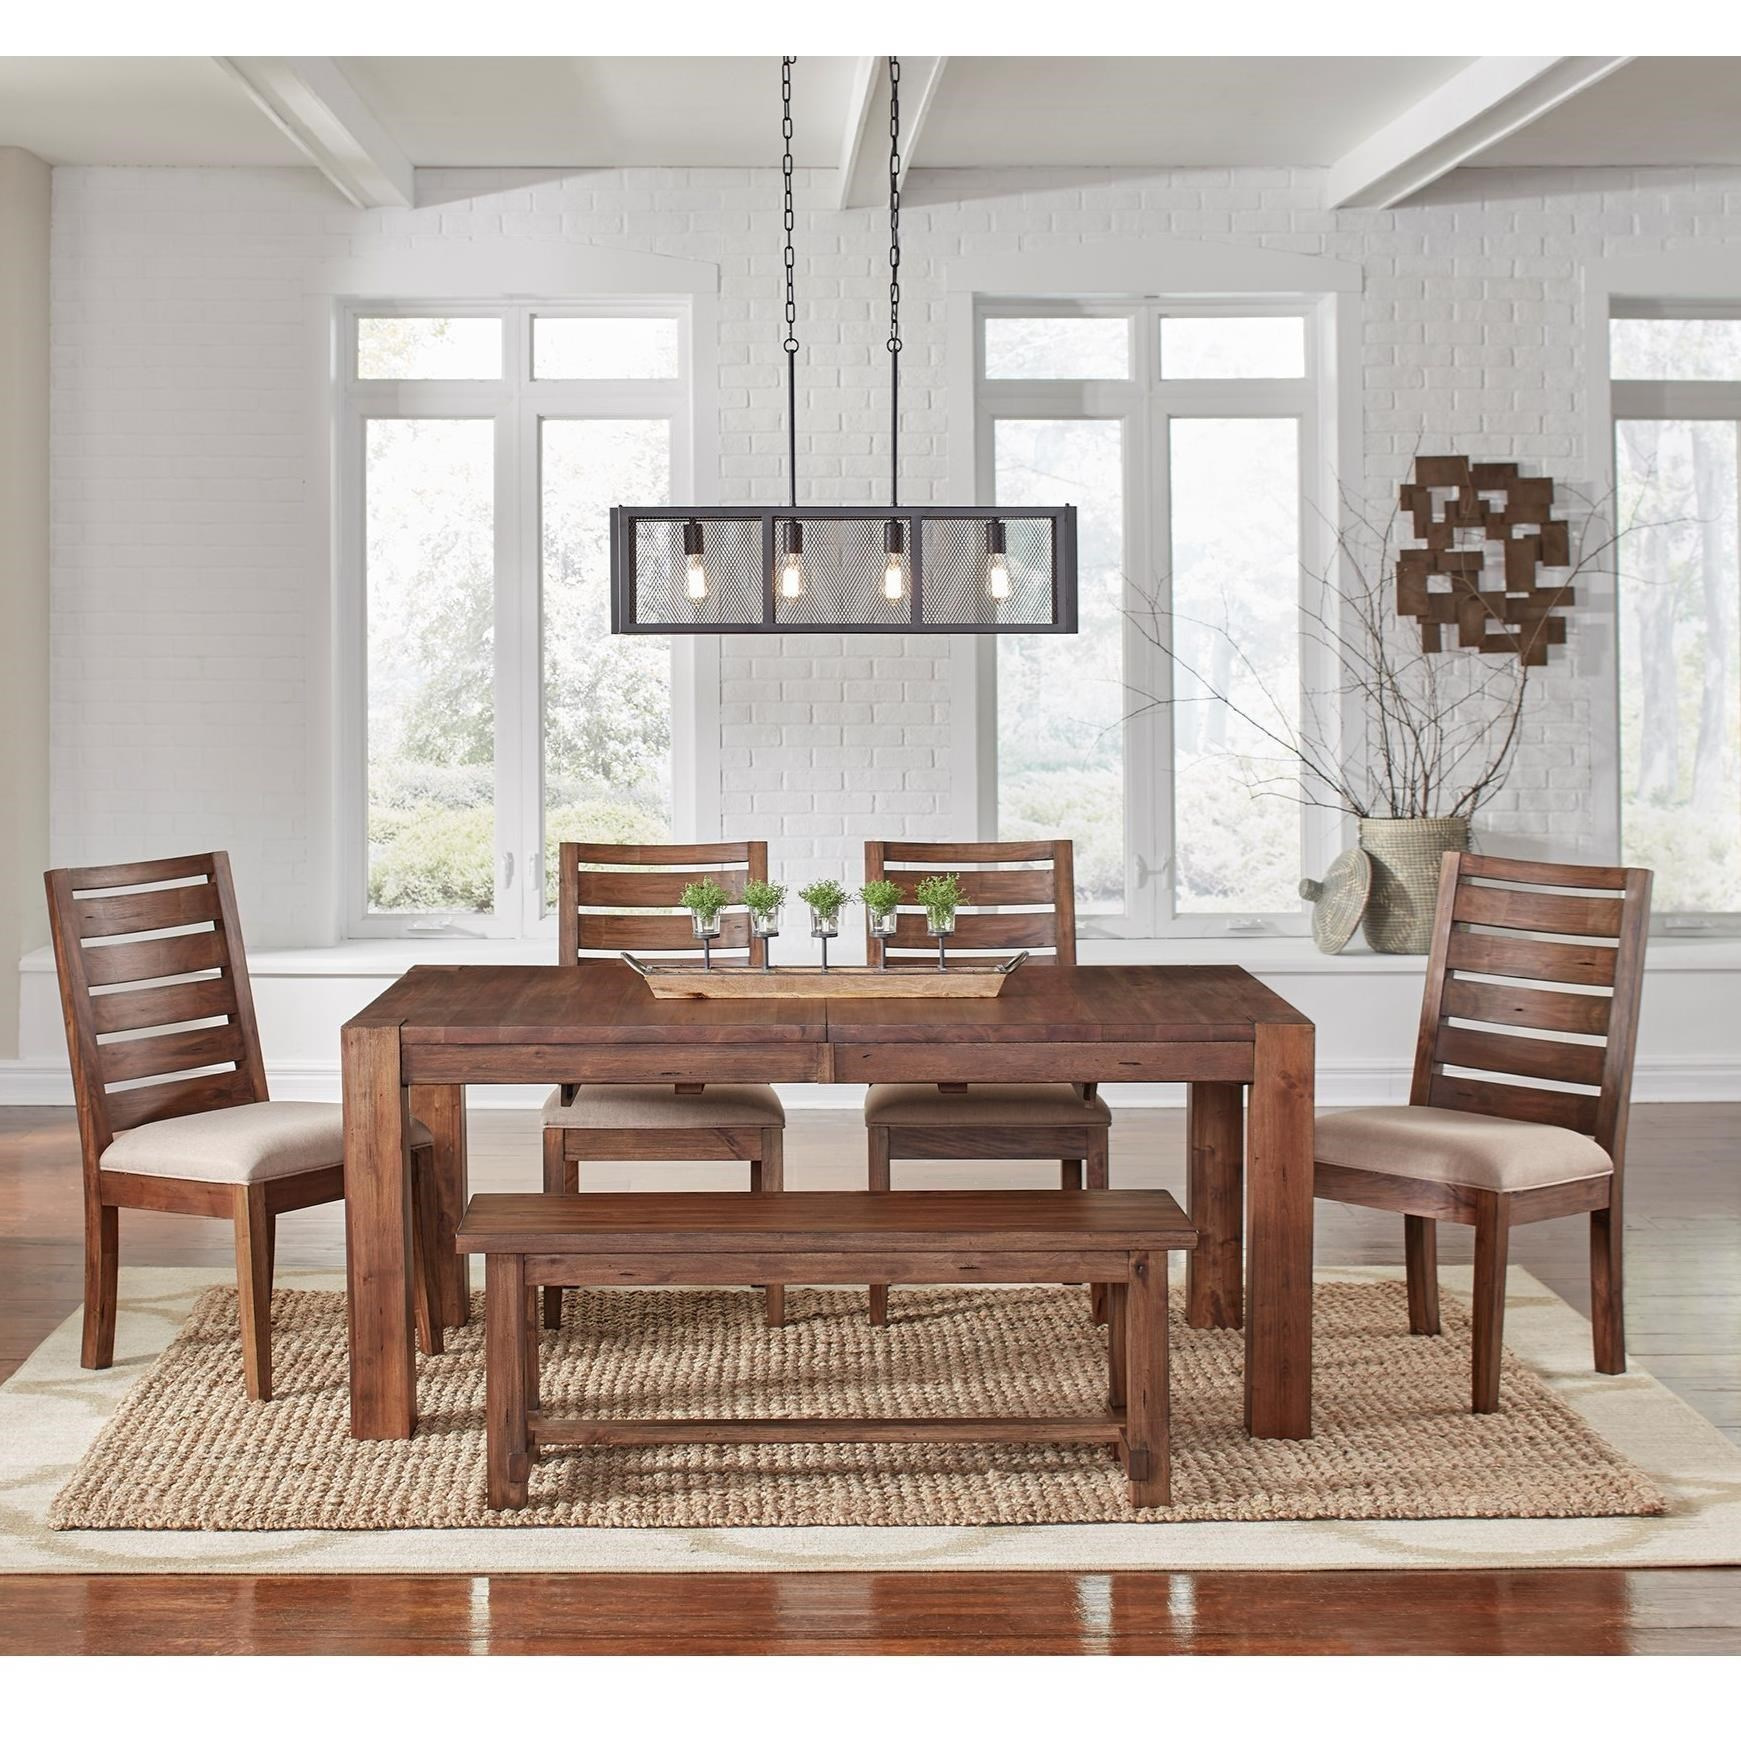 AAmerica Anacortes 7 Piece Dining Set - Item Number: ANA-SM-6-34-0+6x2-45-K